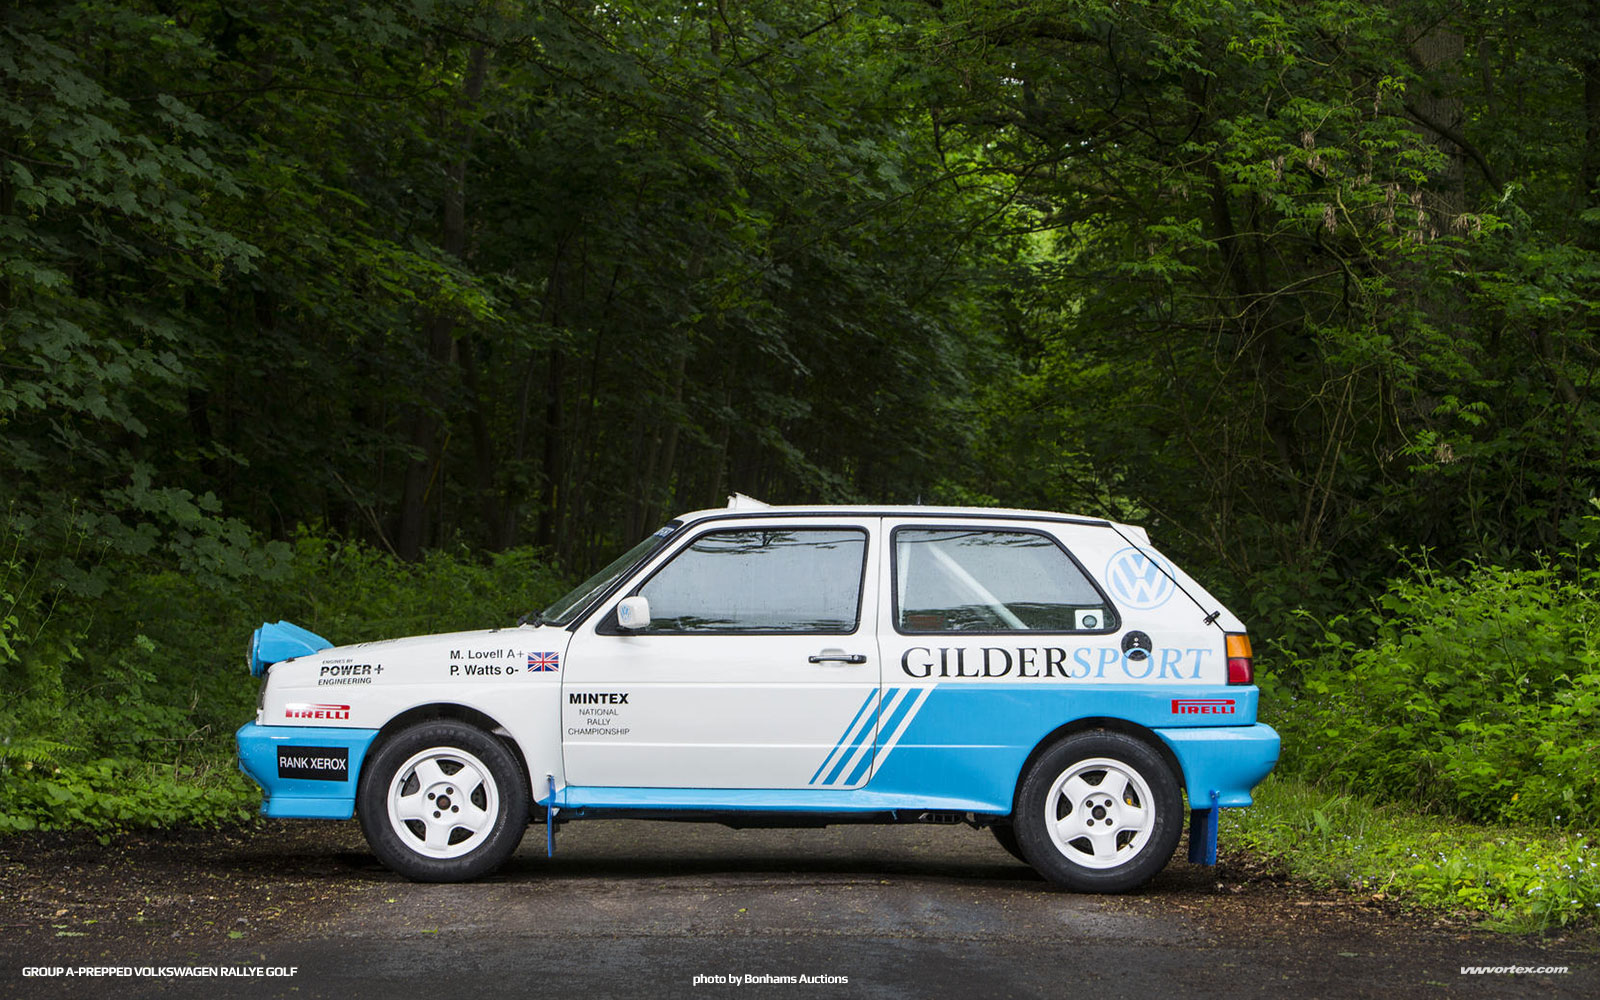 Volkswagen-Rallye-Golf-Group-A-1